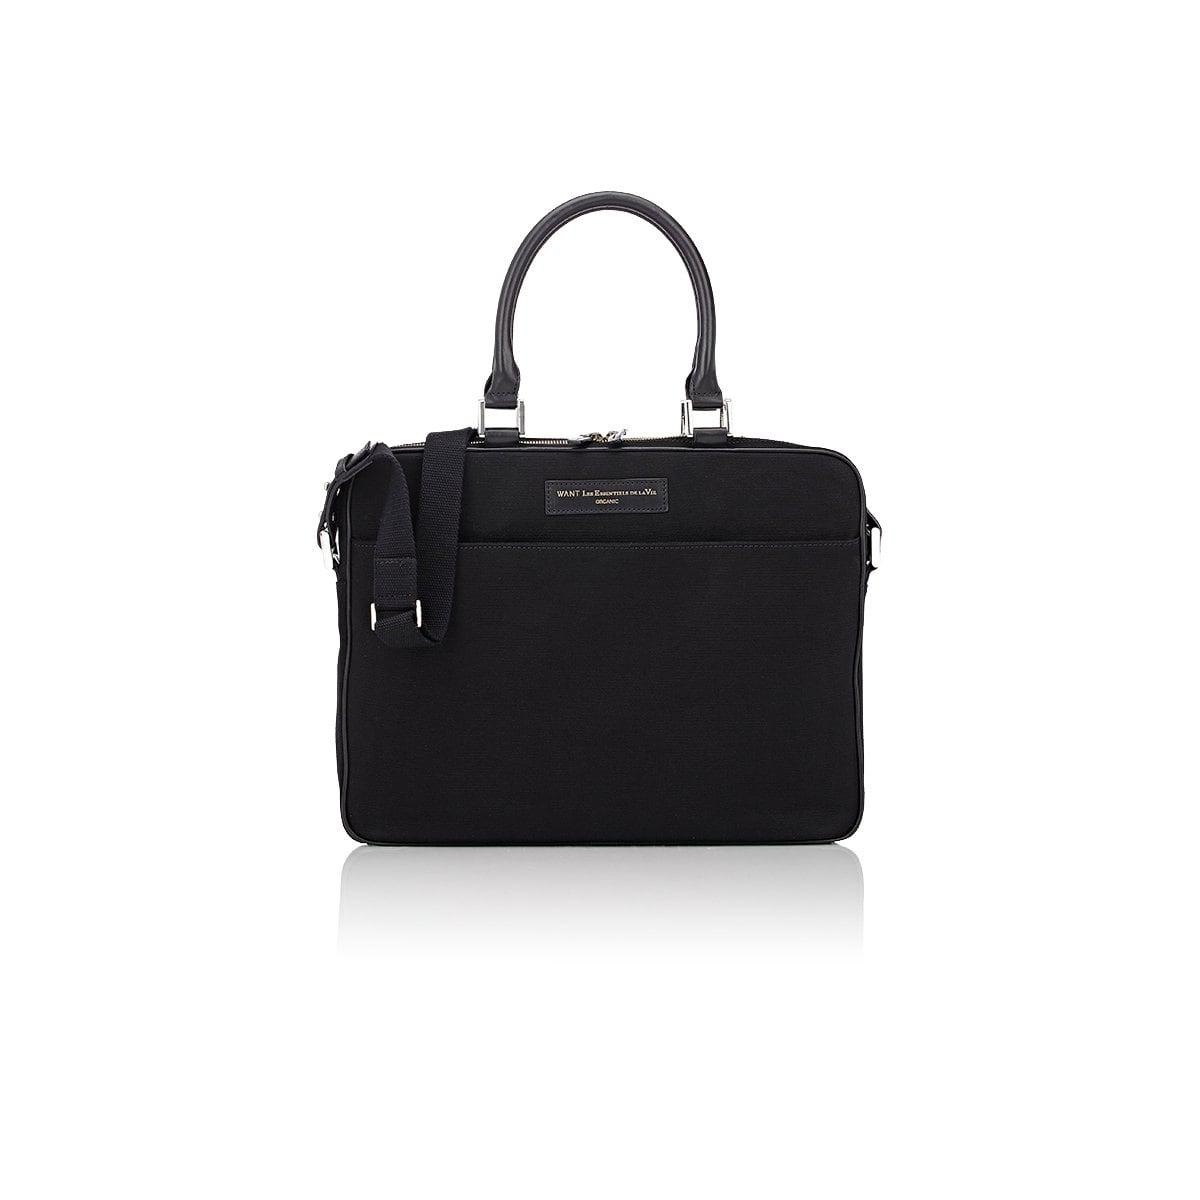 Haneda Leather-Trimmed Nylon Computer Bag Want Les Essentiels Clearance The Cheapest For Sale Very Cheap Discount From China Jx7Tvu9u